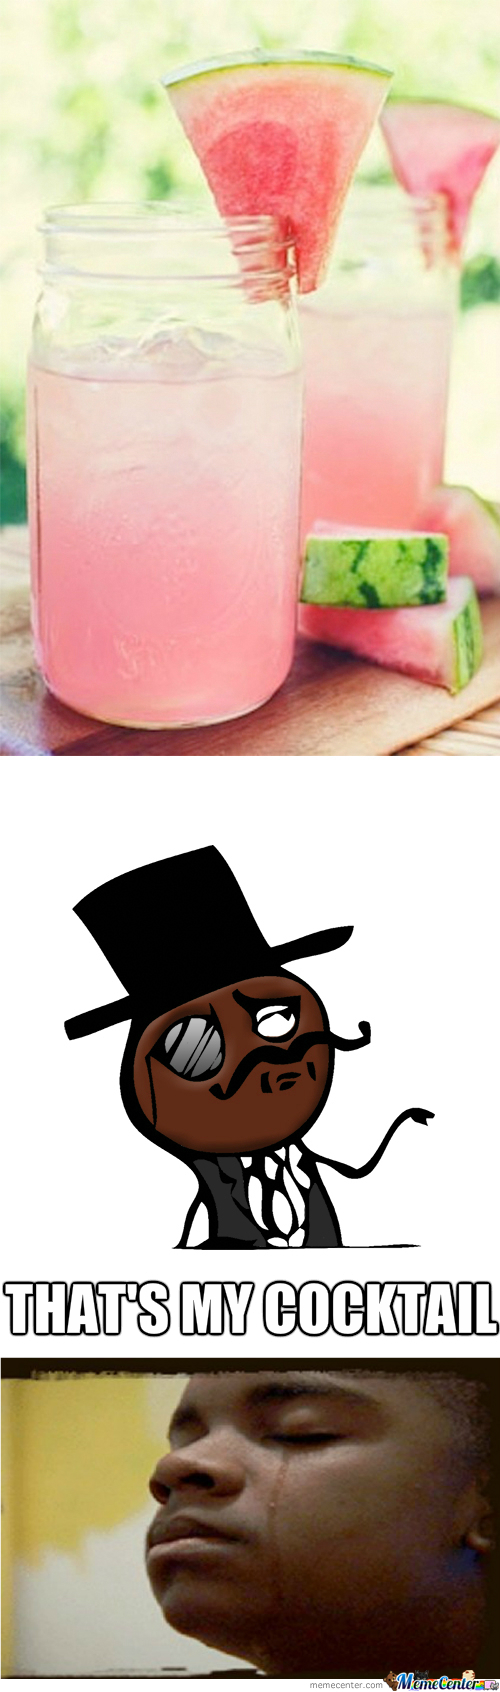 [RMX] Watermelon Cocktail